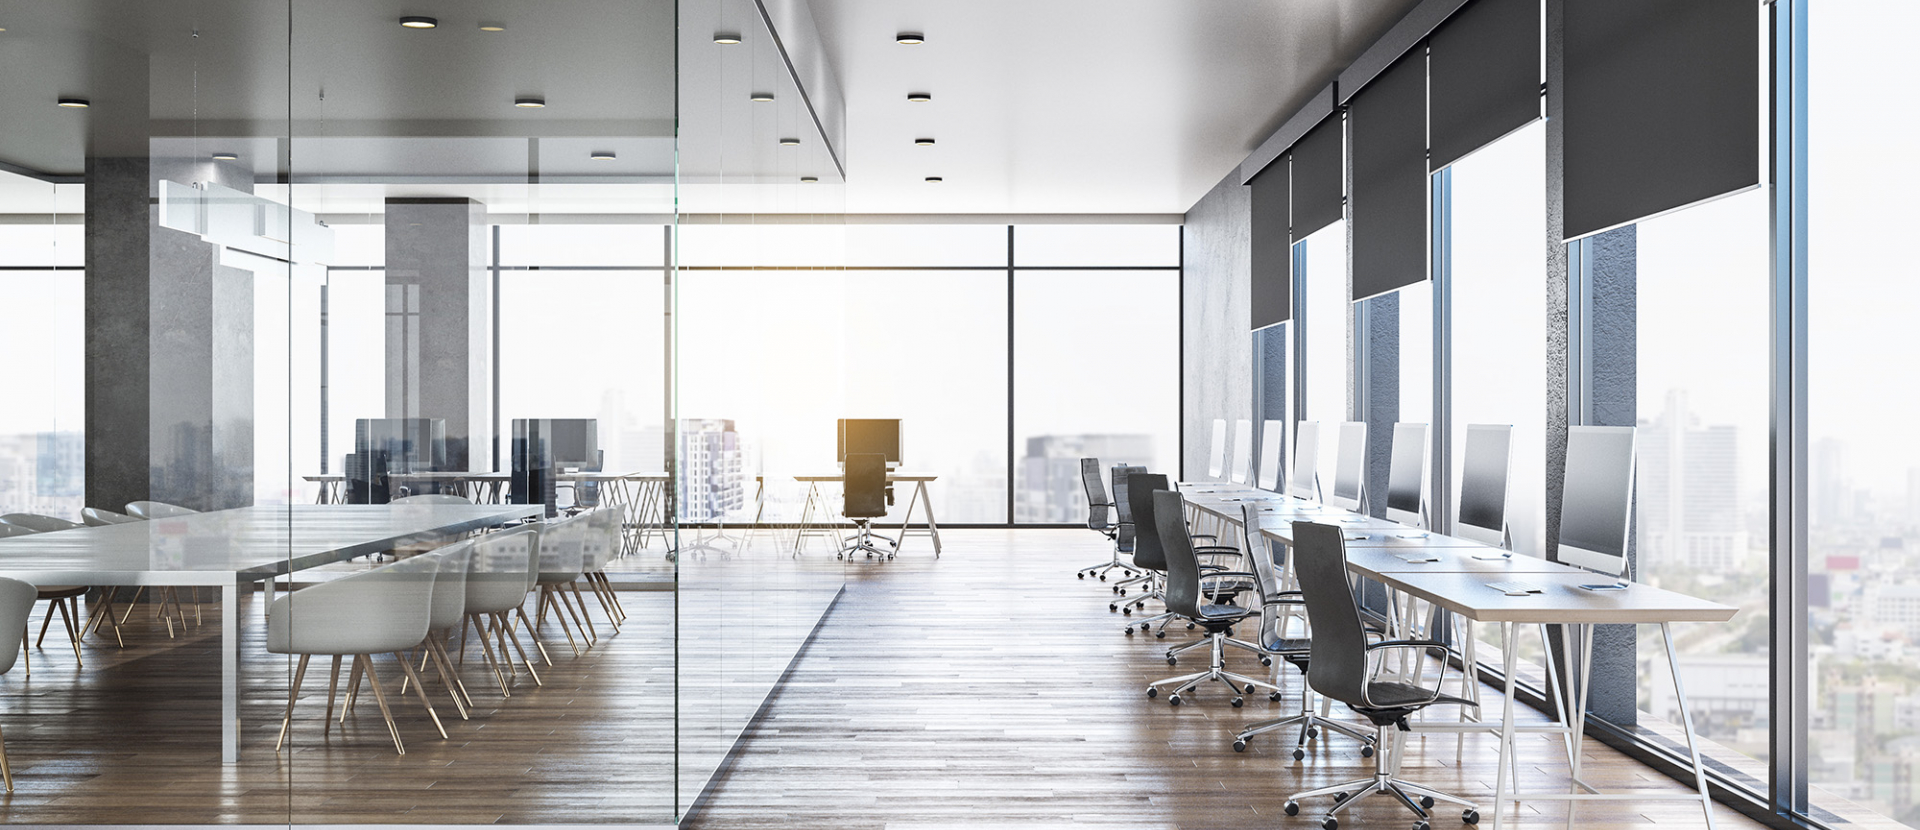 open, empty office space with glass walls and wooden floors. desks are lined up against the floor-to ceiling windows giving way for more space in between things